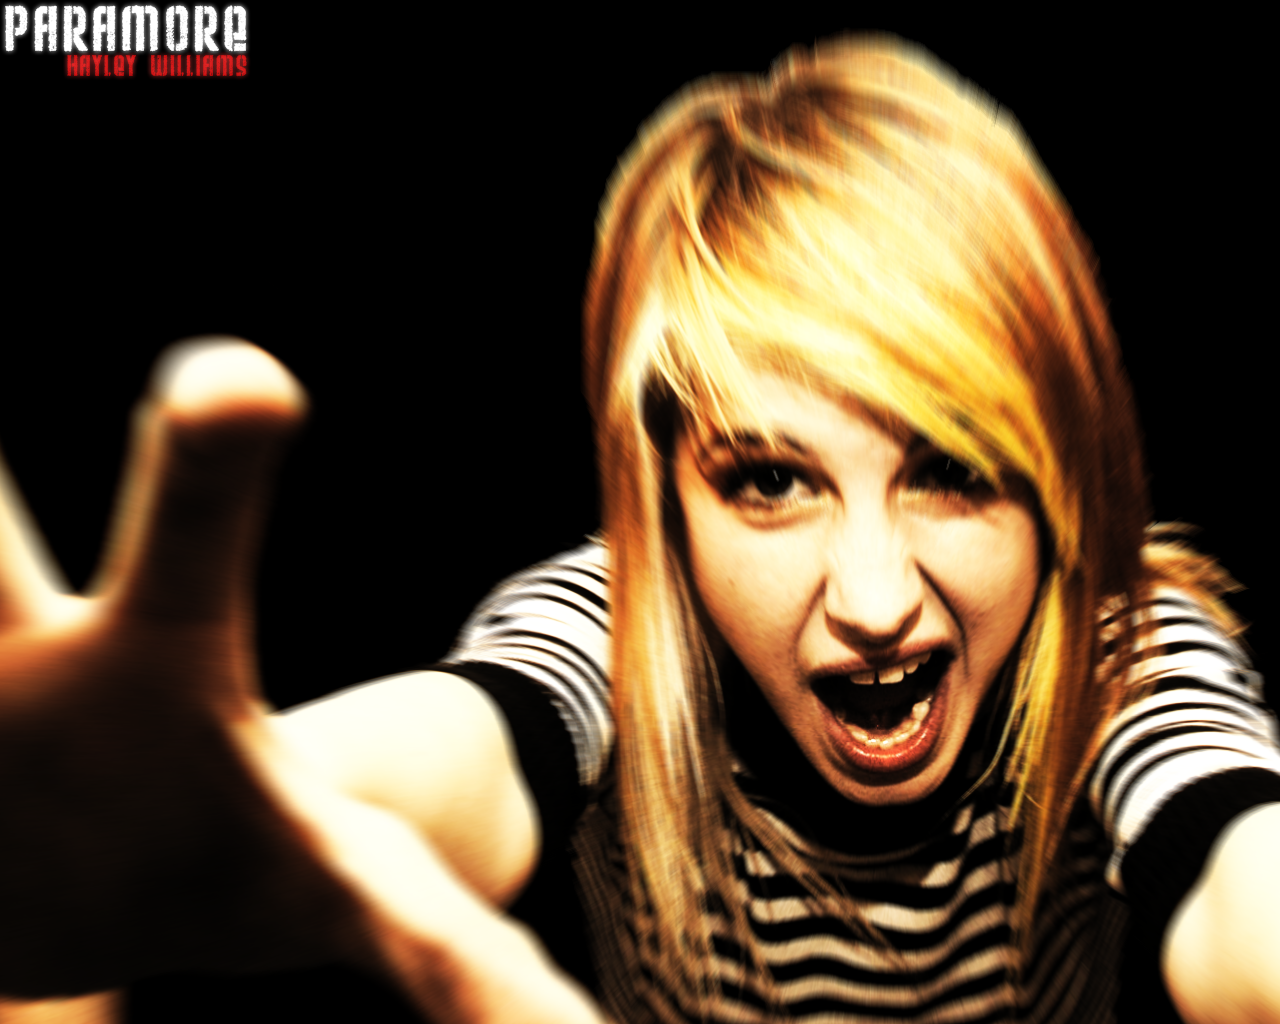 Paramore Paramore Wallpaper 25834394 Fanpop